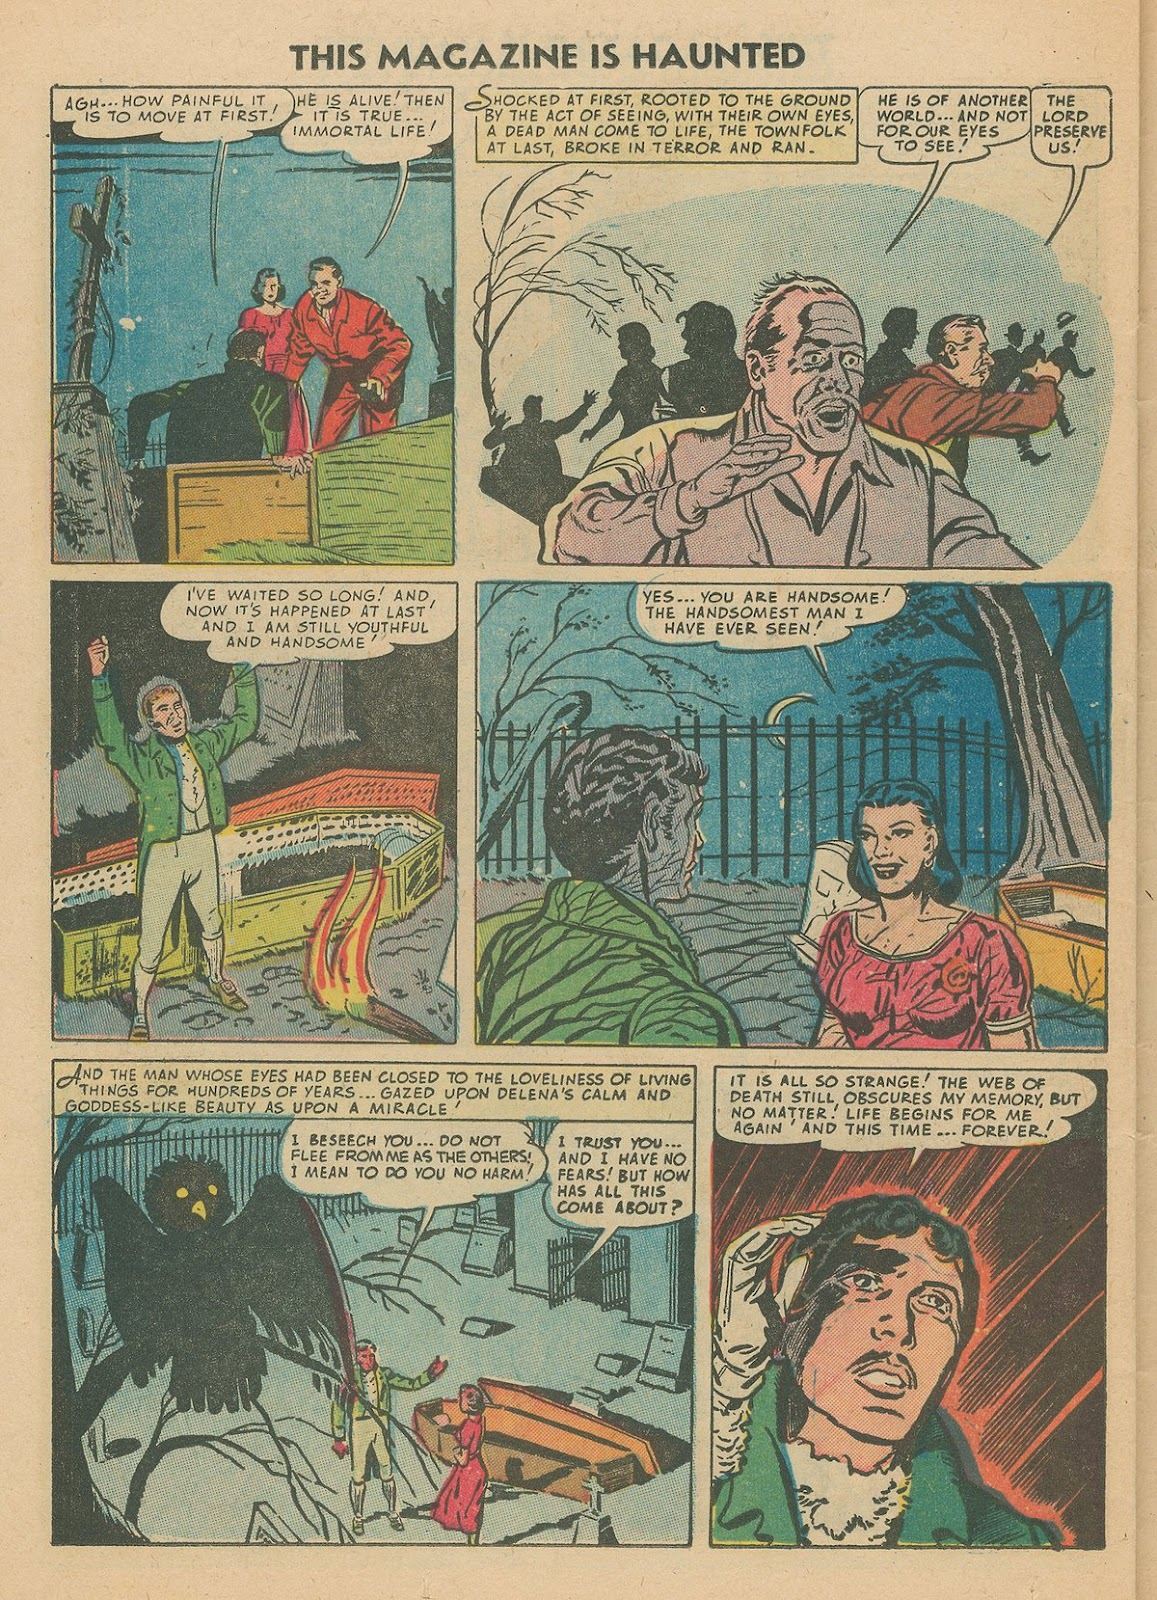 Read online This Magazine Is Haunted comic -  Issue #21 - 26